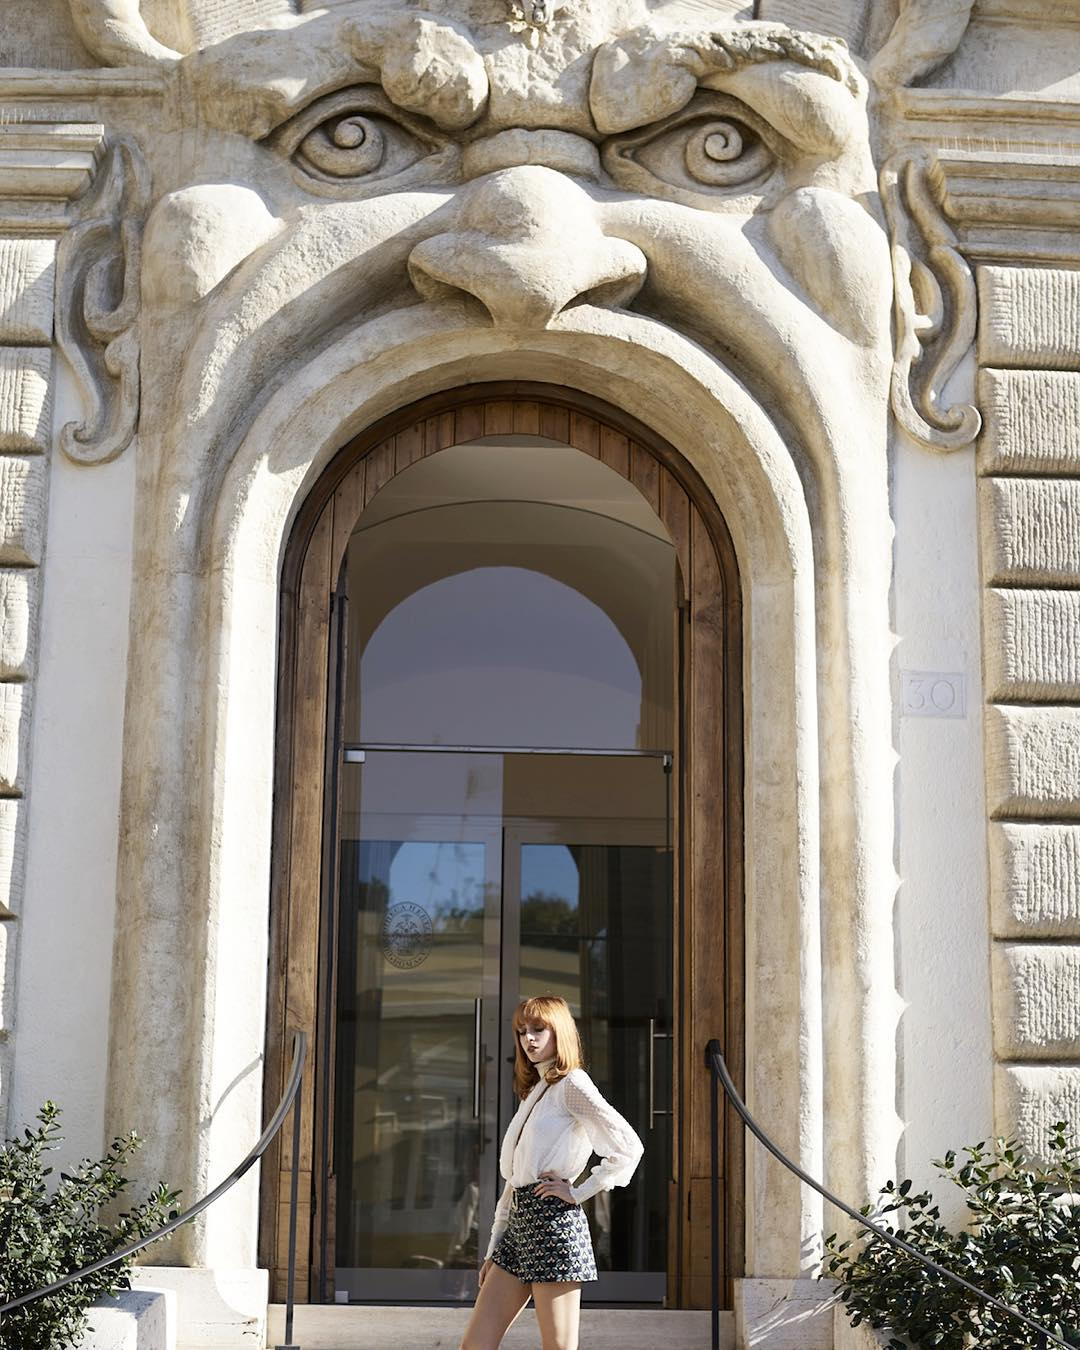 Good morning ! Roma 1900 on the blog now withhellip